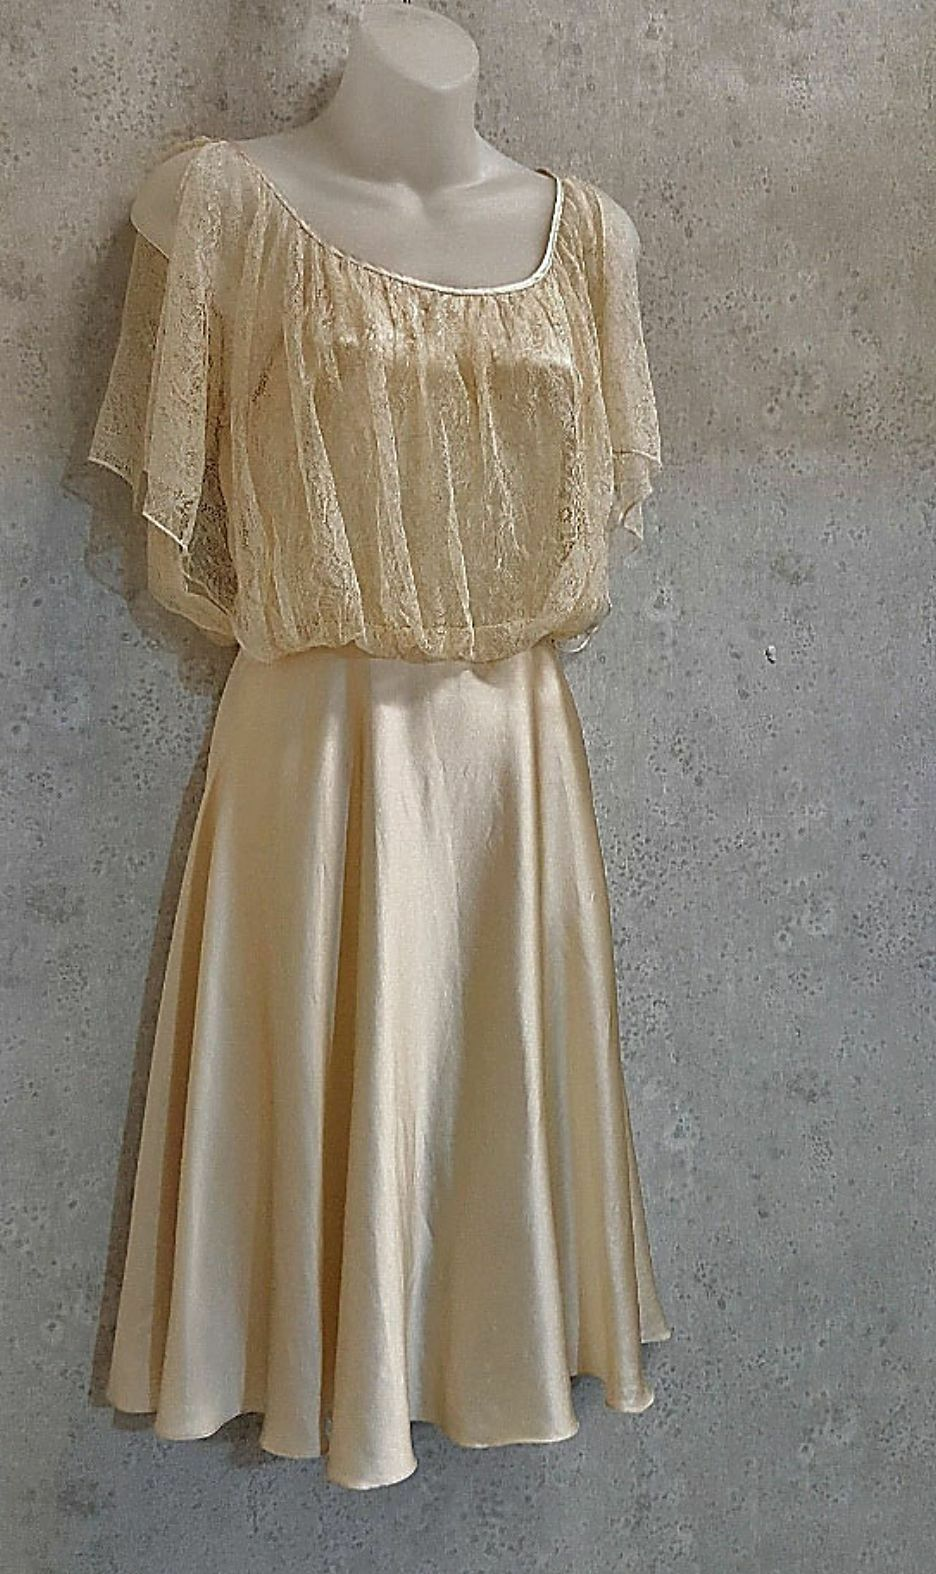 Lace overlay ivory Silk Dress Fleur Wood sz Small